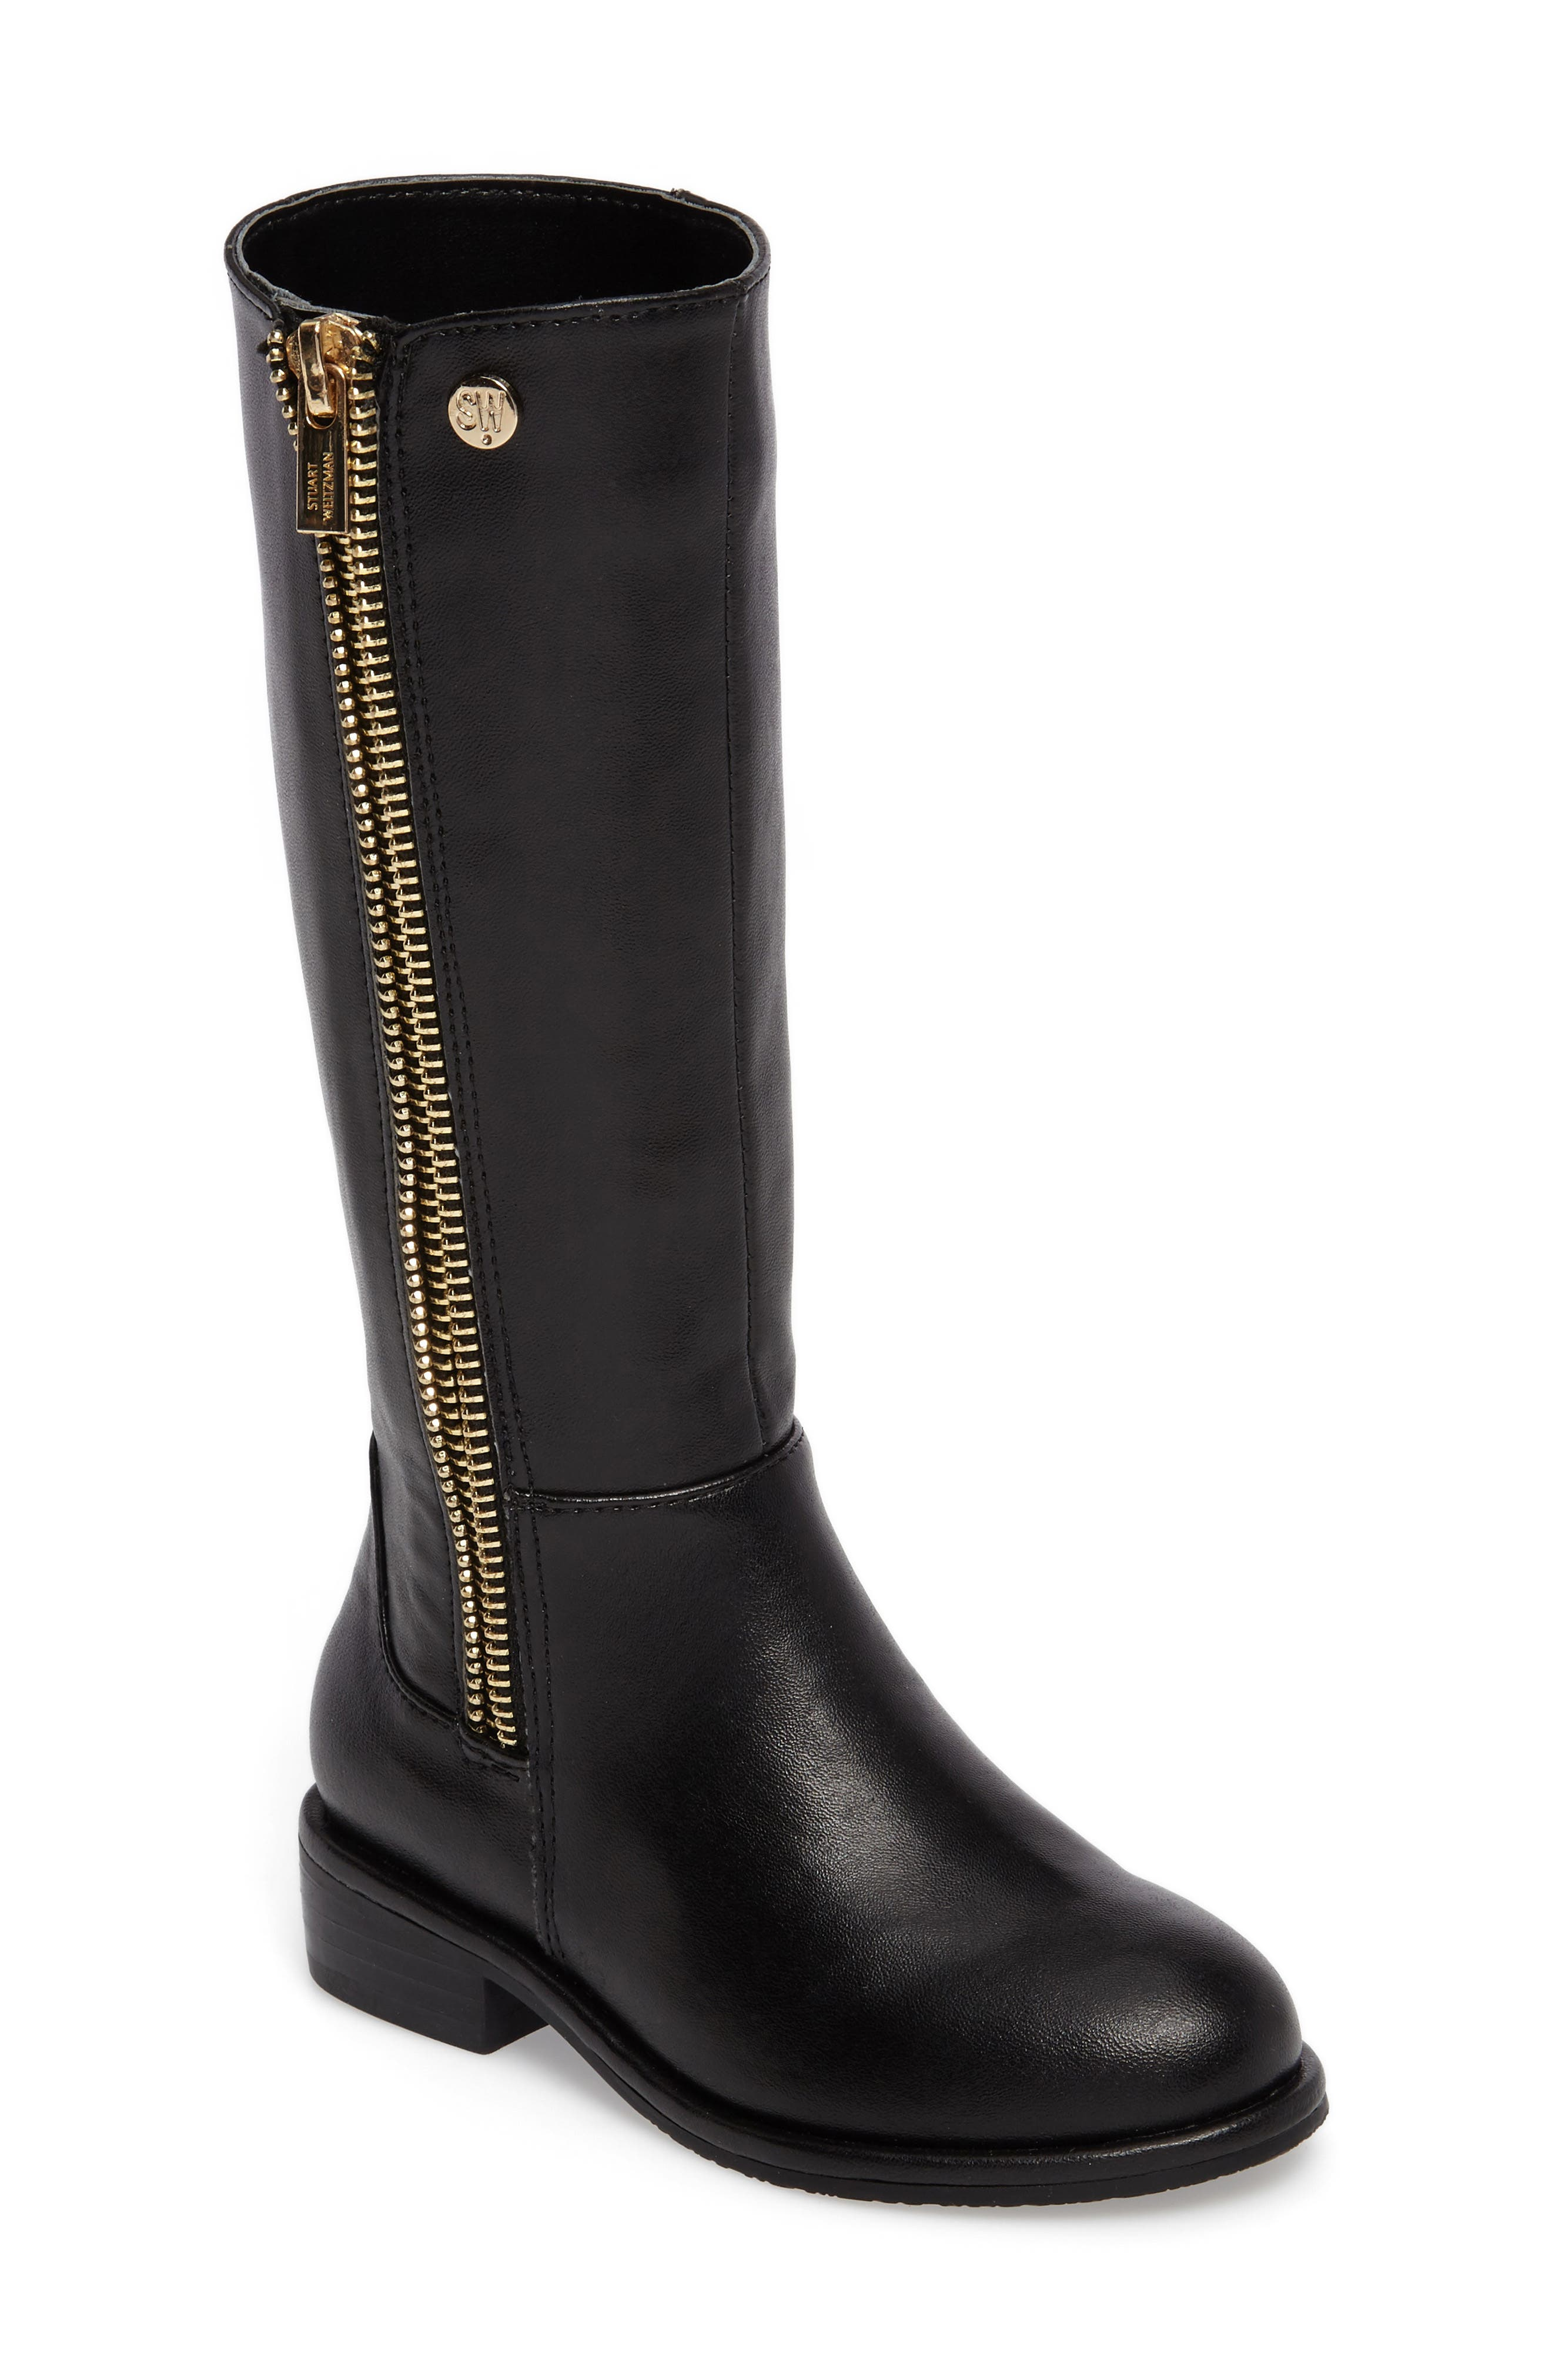 Stuart Weitzman Lowland Riding Boot (Toddler, Little Kid & Big Kid)